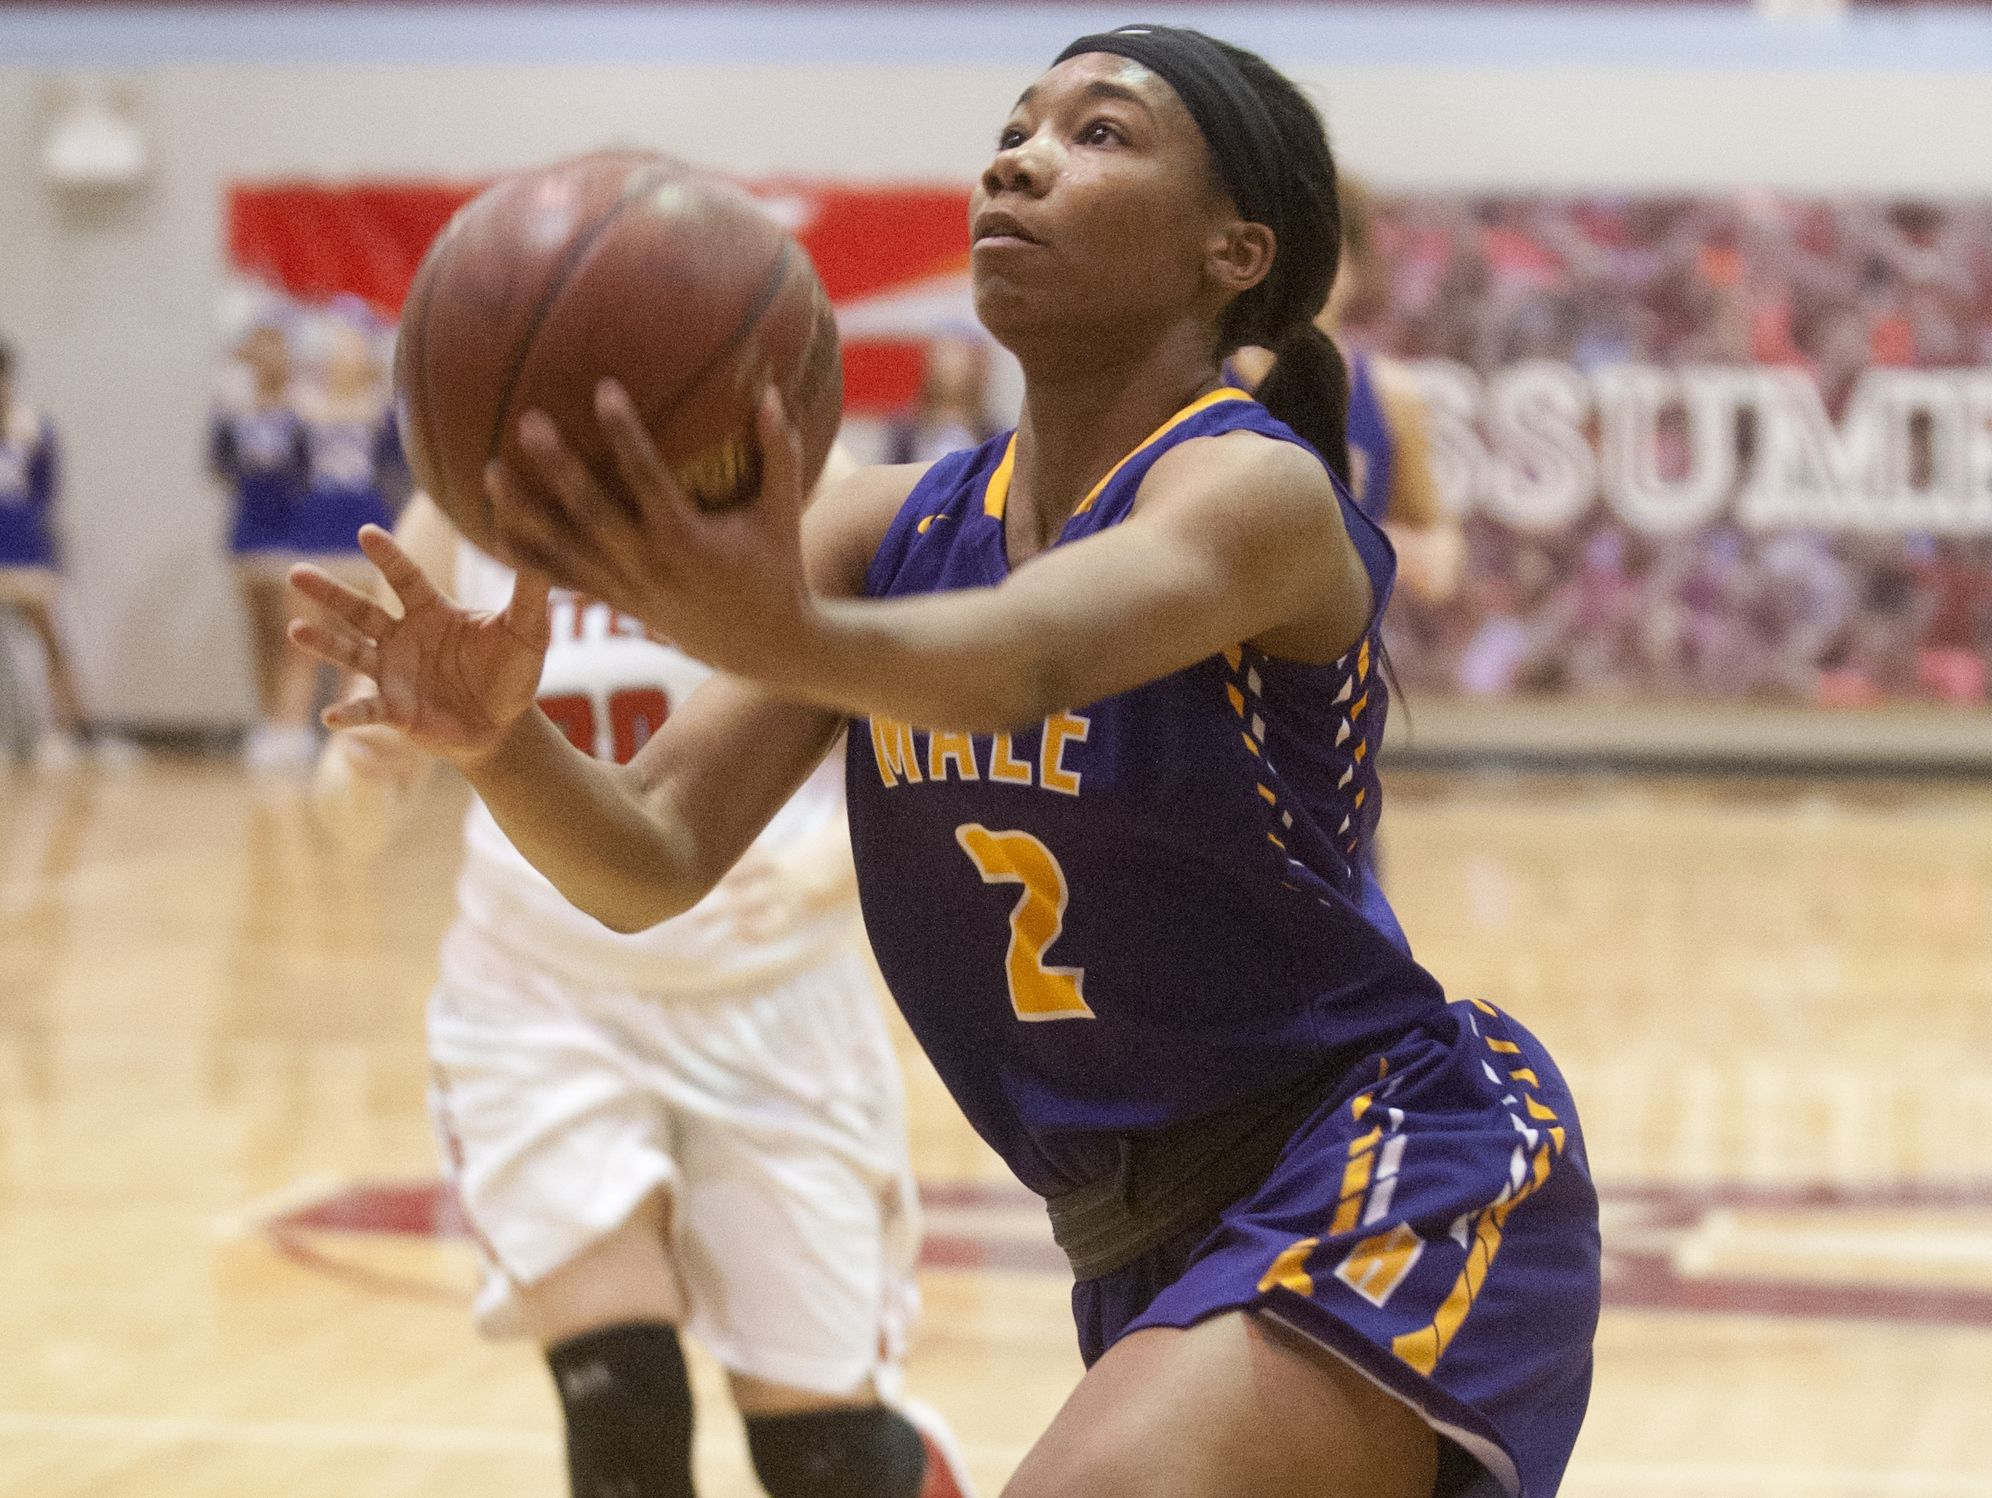 Male guard Ciaja Harbison drives to the basket in the Girls' LIT championship. 28 January 2017